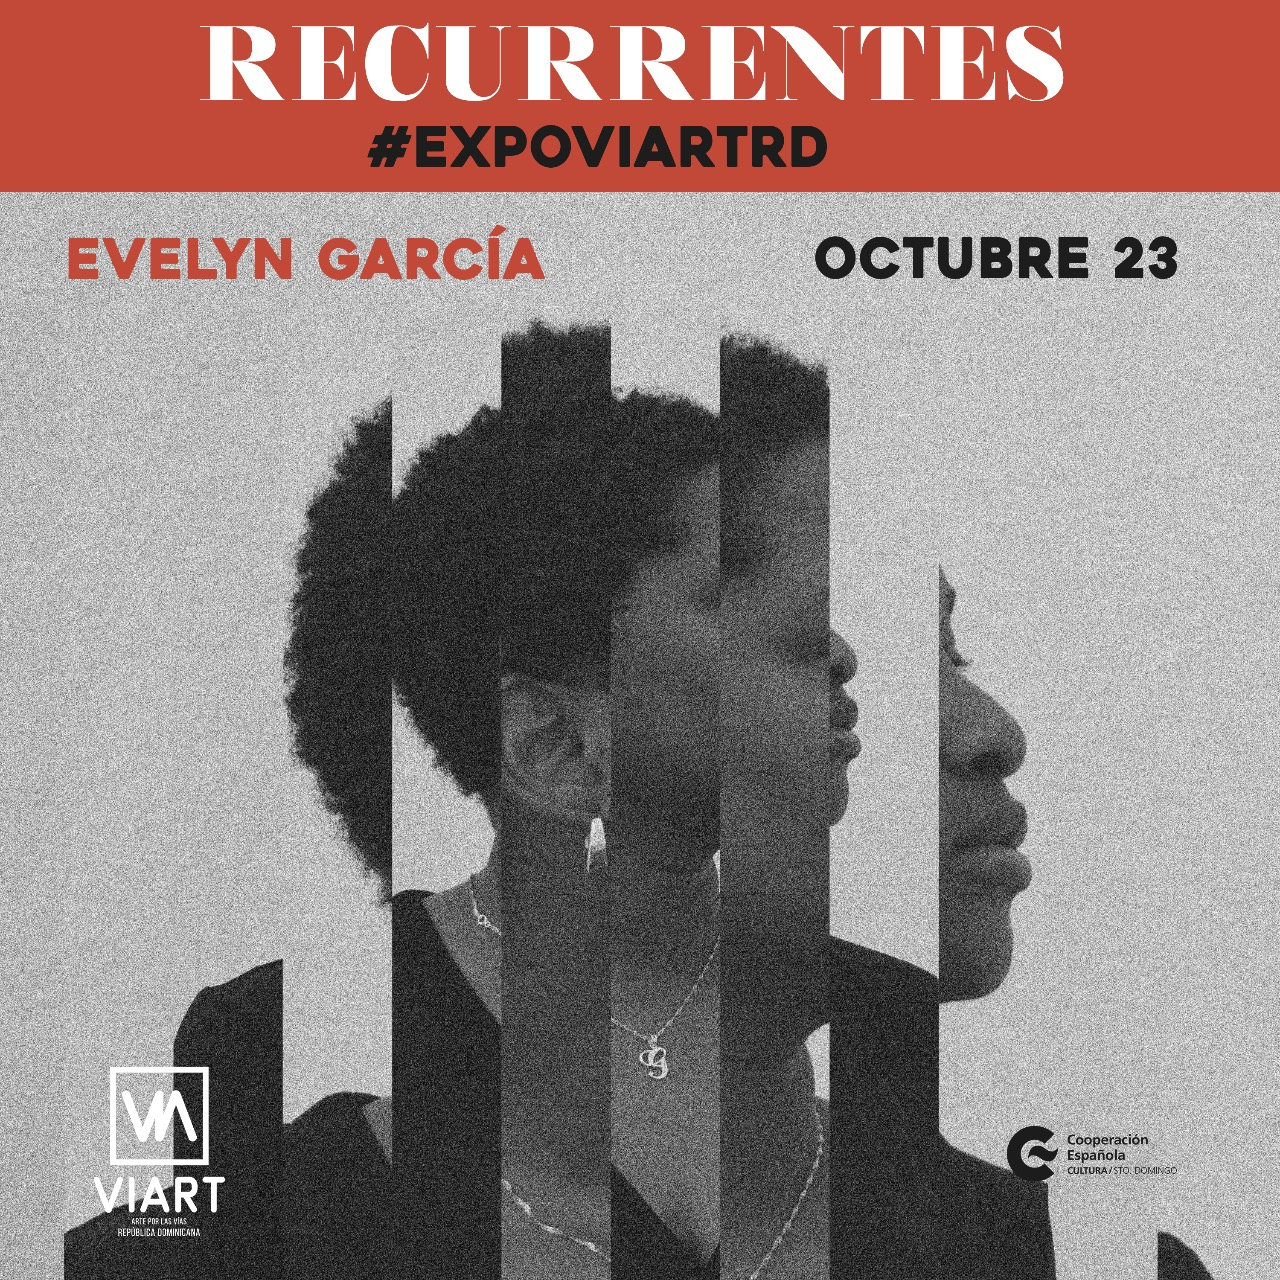 Evelyn_garcia_recurrentes